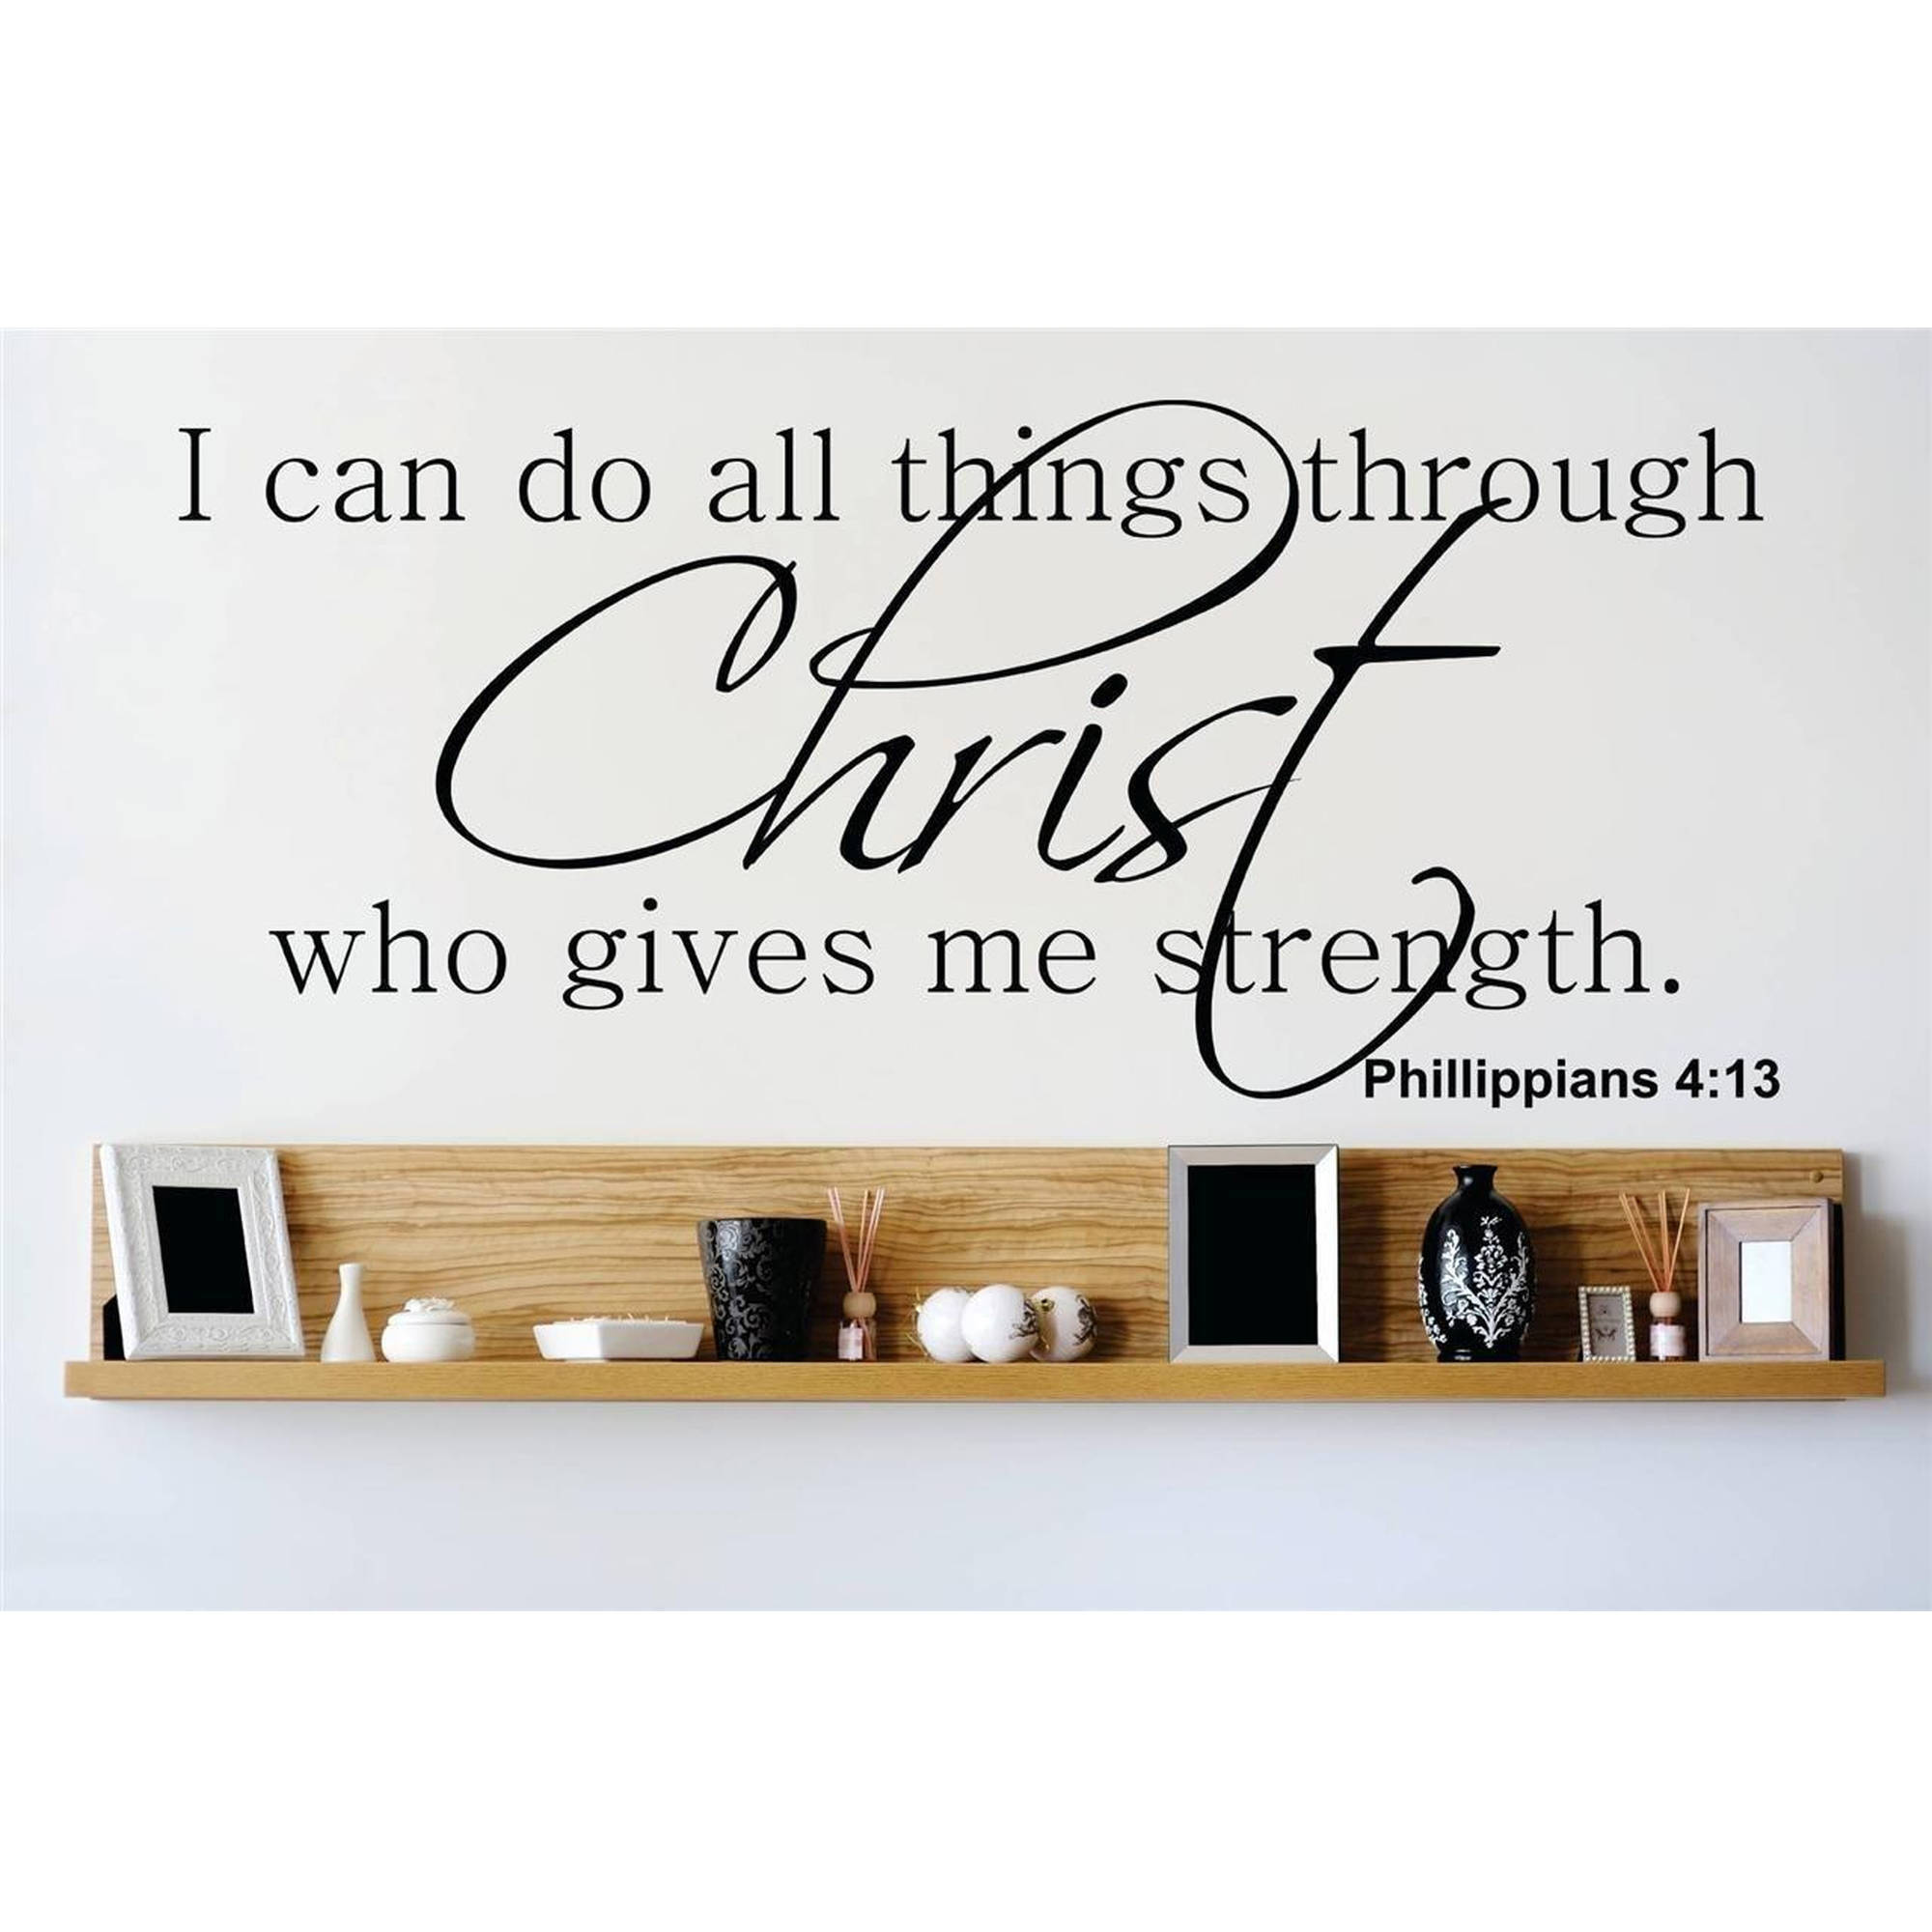 """I Can Do All Things Through Christ Who Give Me Strength. Phillippians 4:13 Bible Quote Wall Decal, 10"""" x 20"""", Black"""